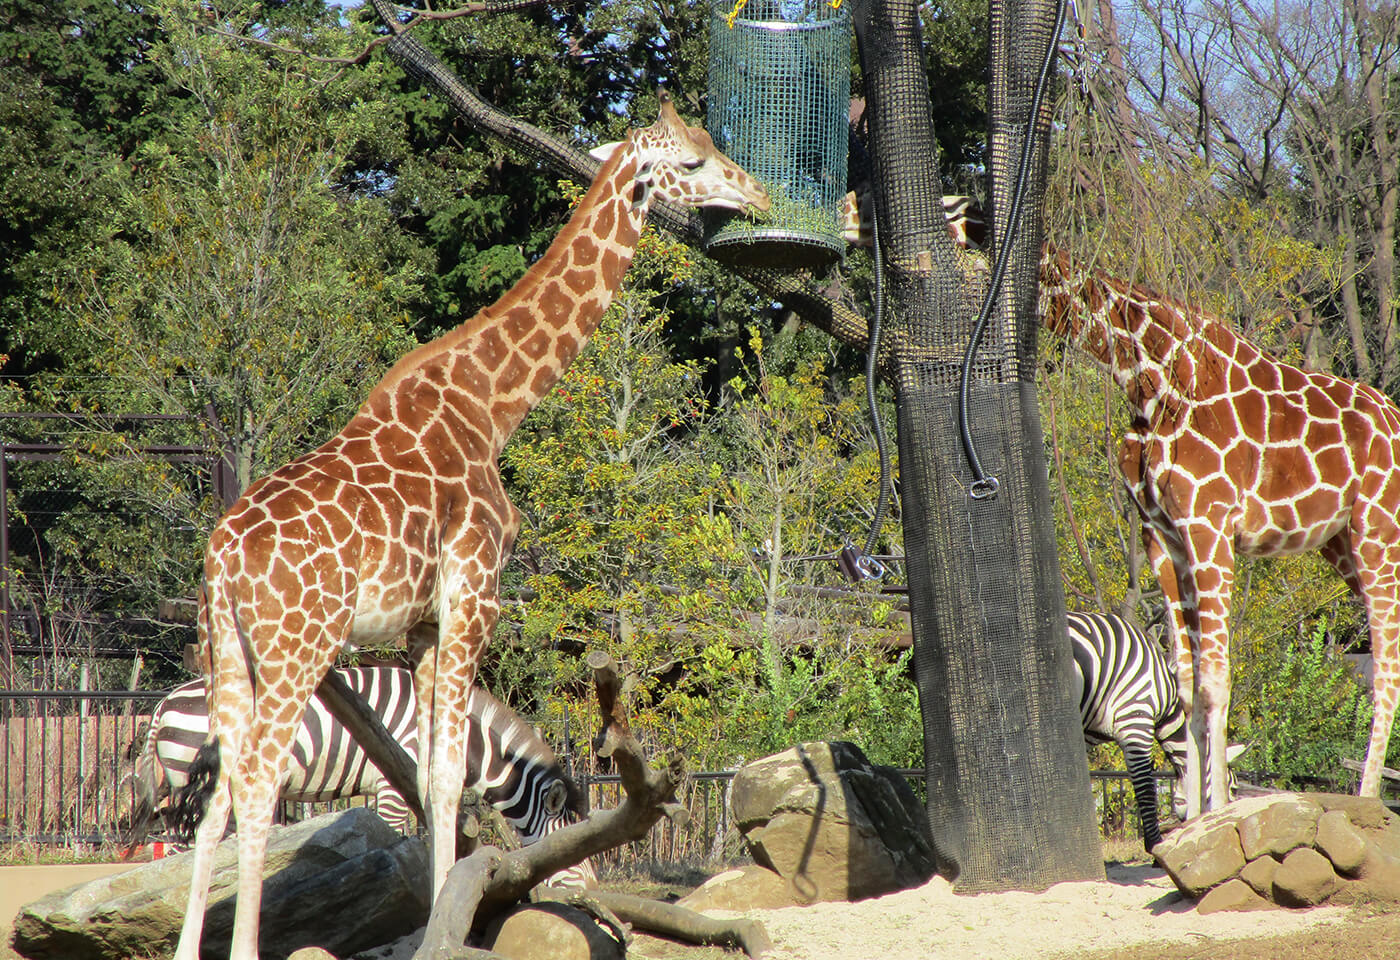 Image of giraffes in a zoo